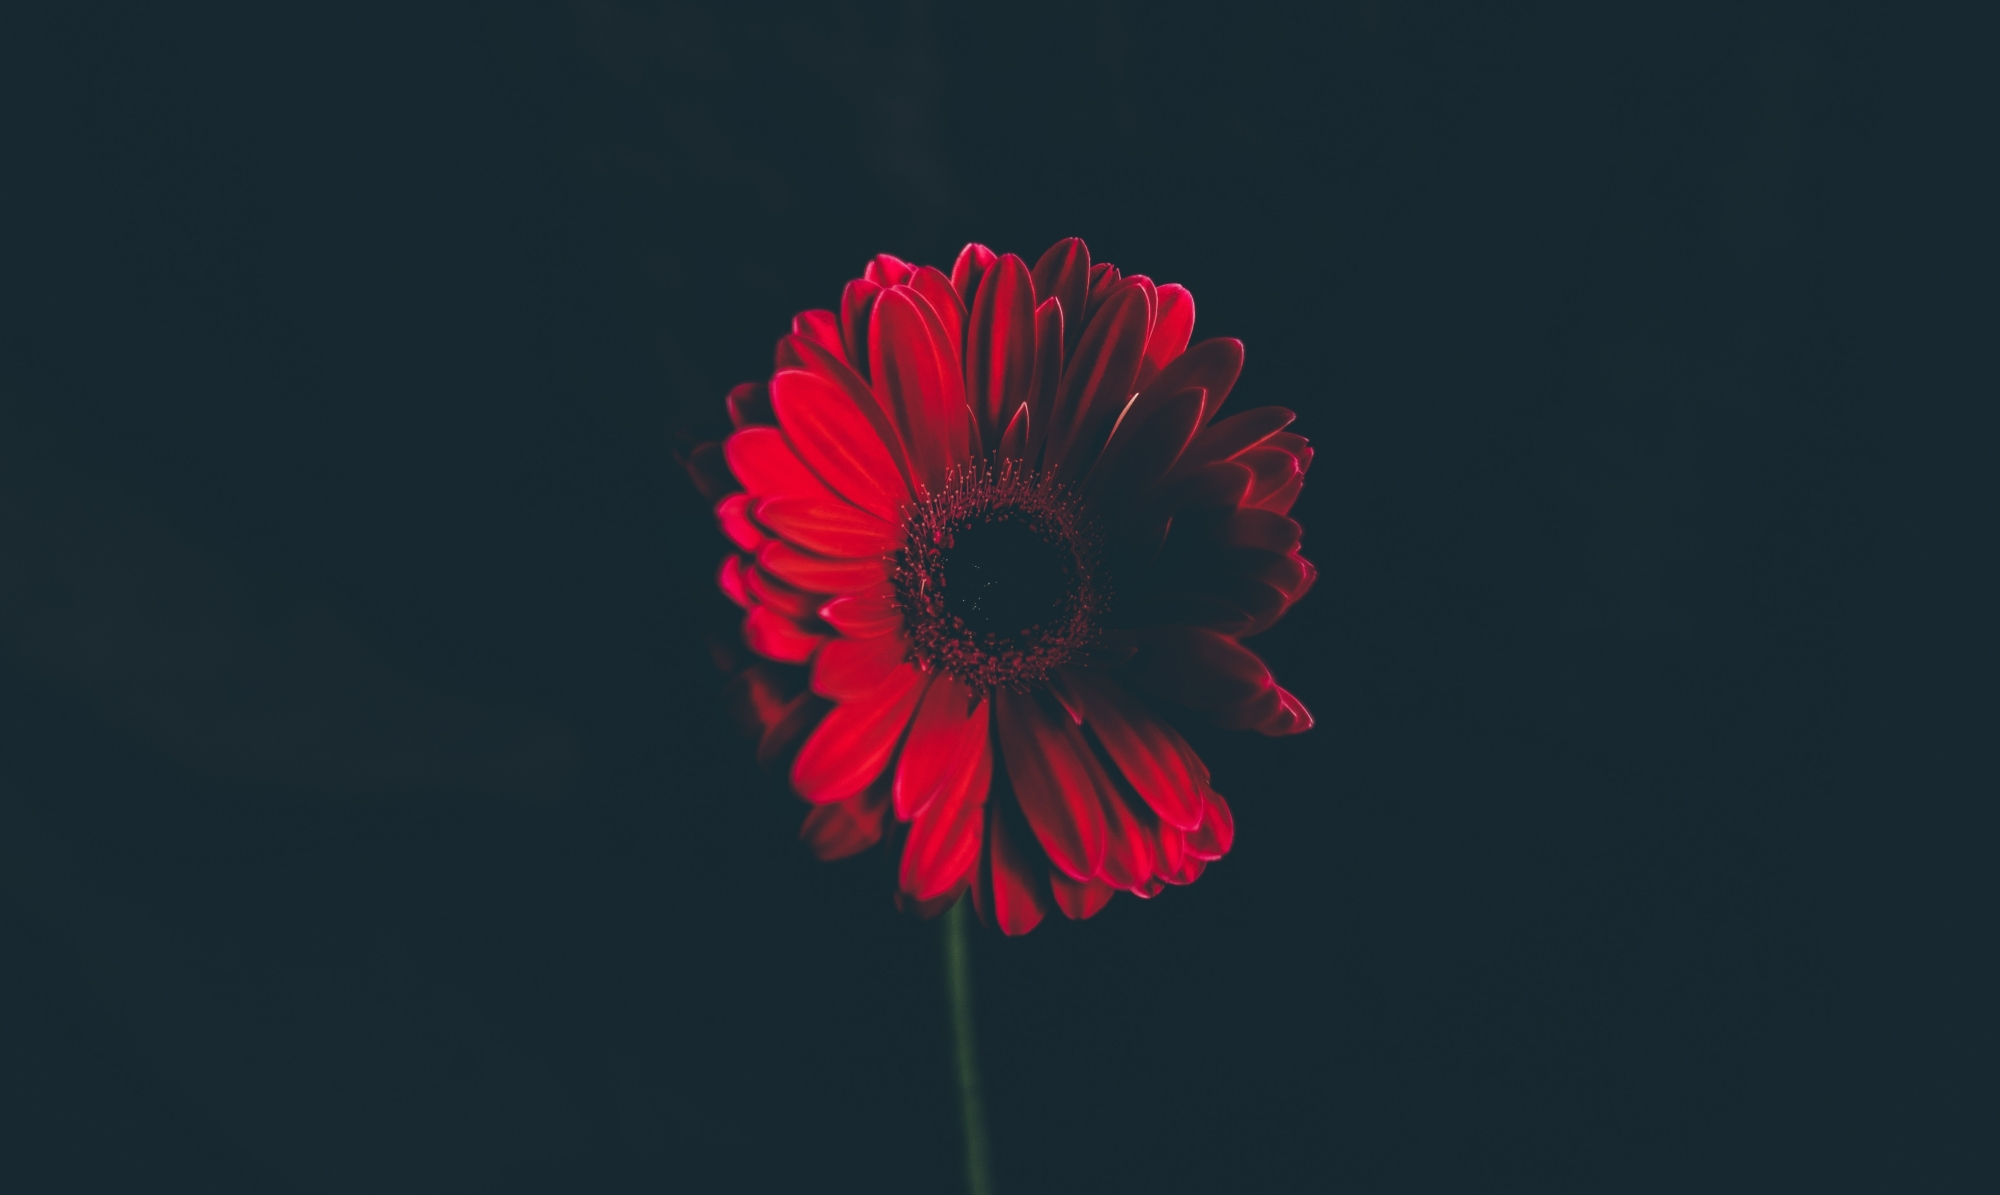 A photo of a red daisy on a black background by Annie Spratt on Unsplash